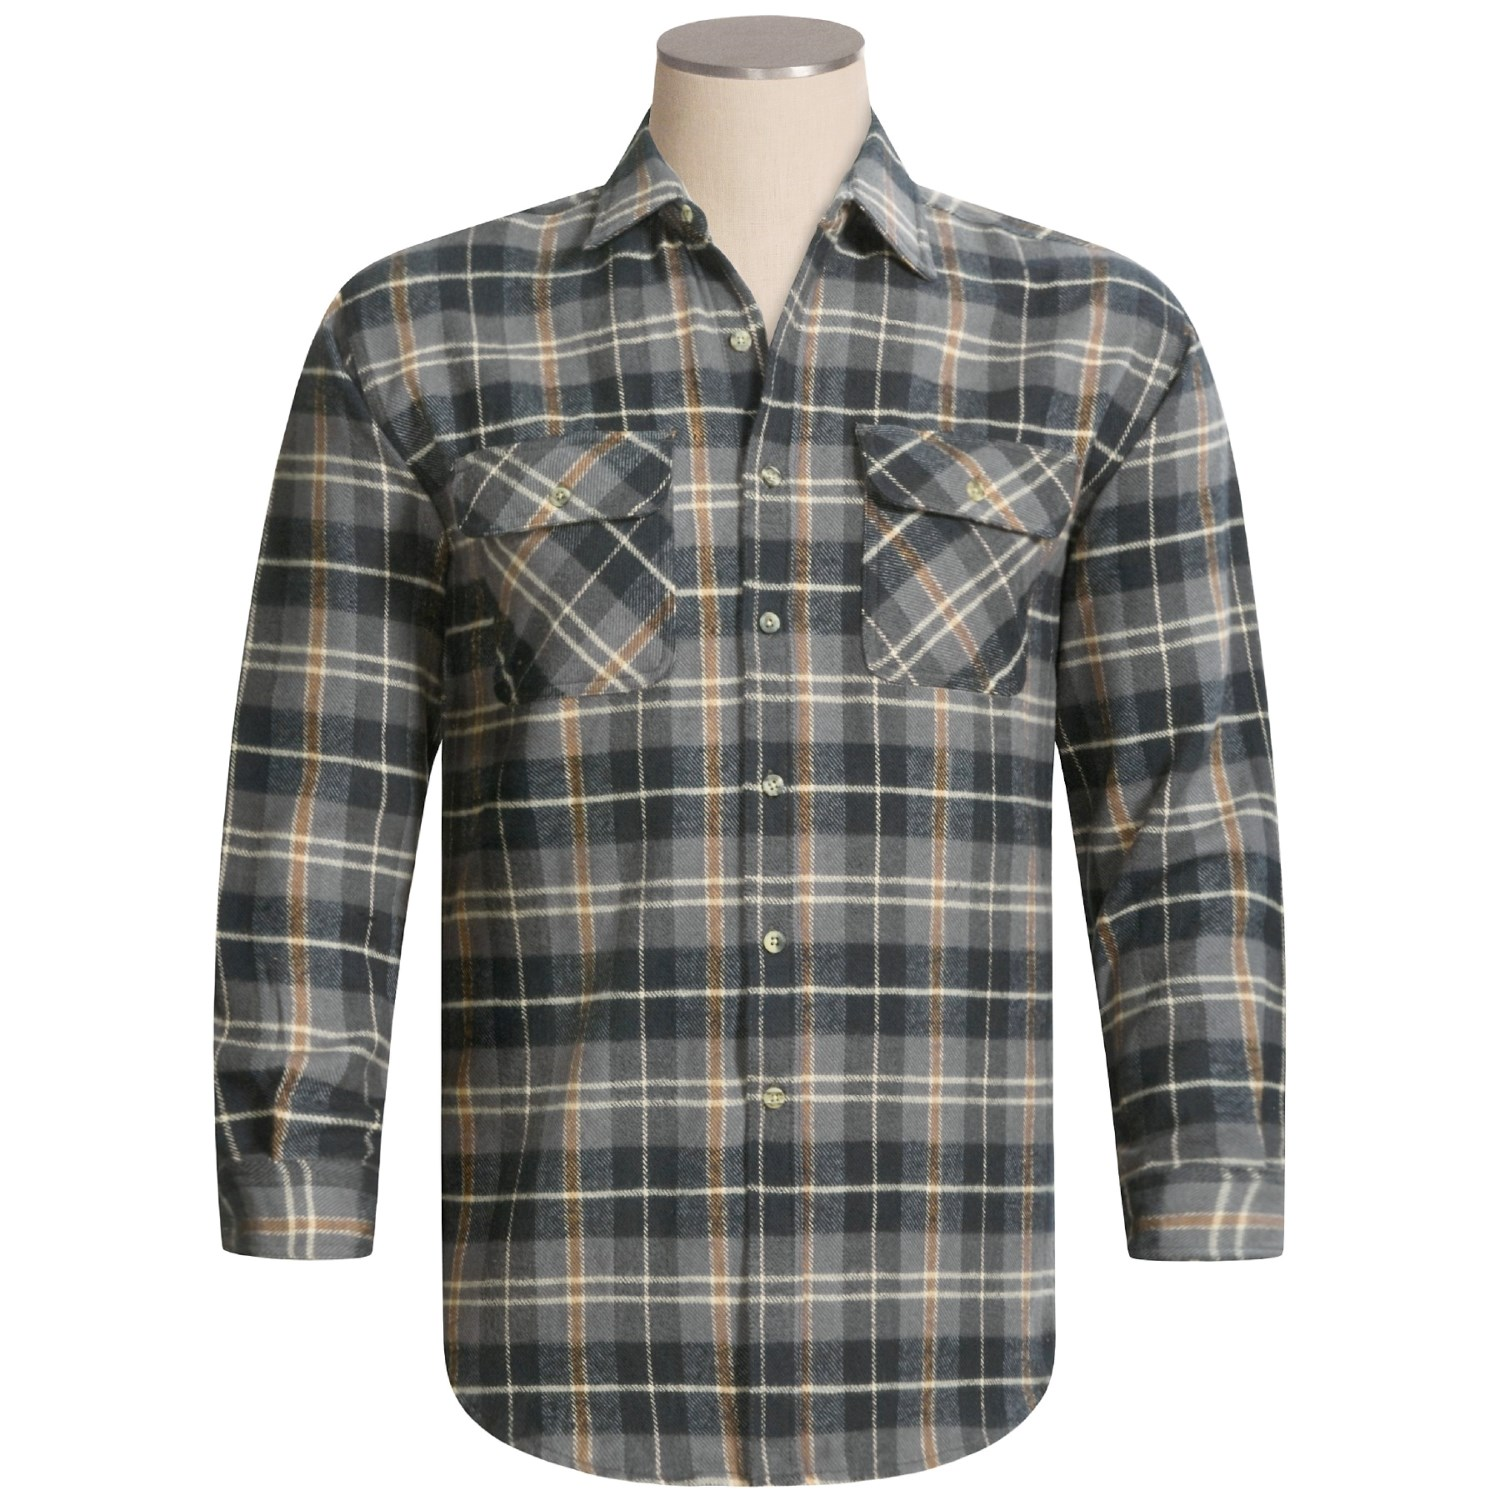 Canyon guide juneau brawny flannel shirt for men 2235p for 9 oz flannel shirt